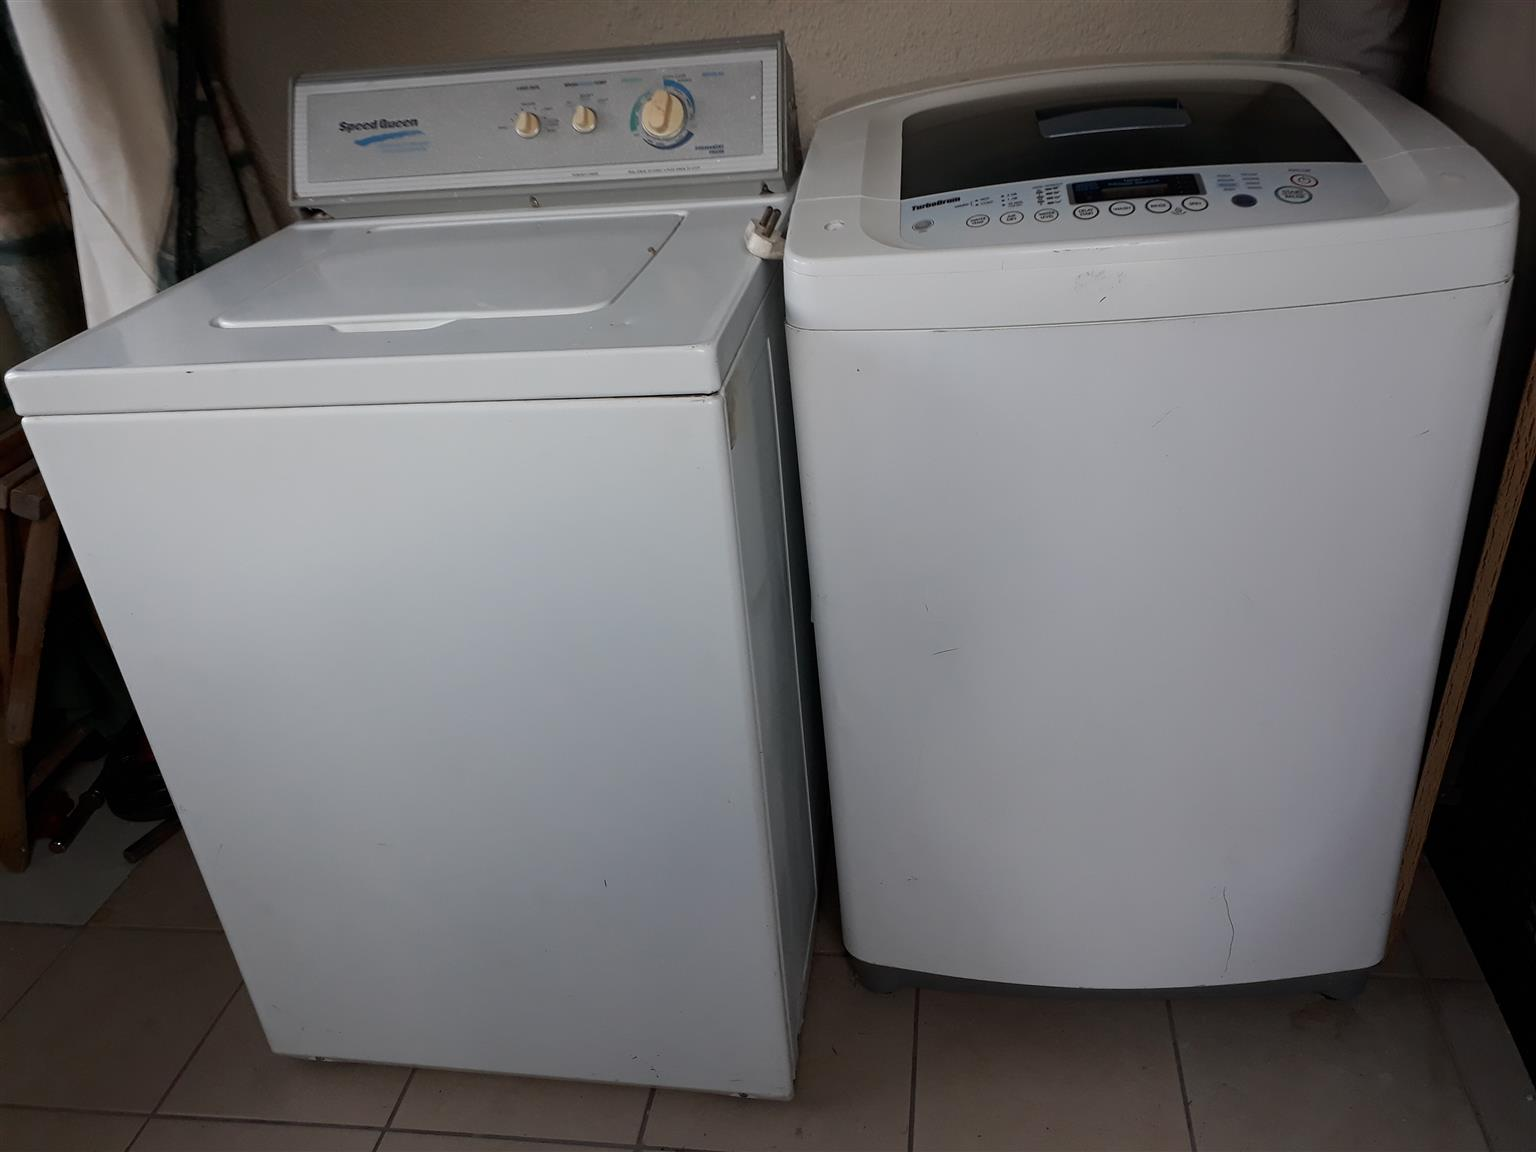 Take 2 washing machines for the price of one